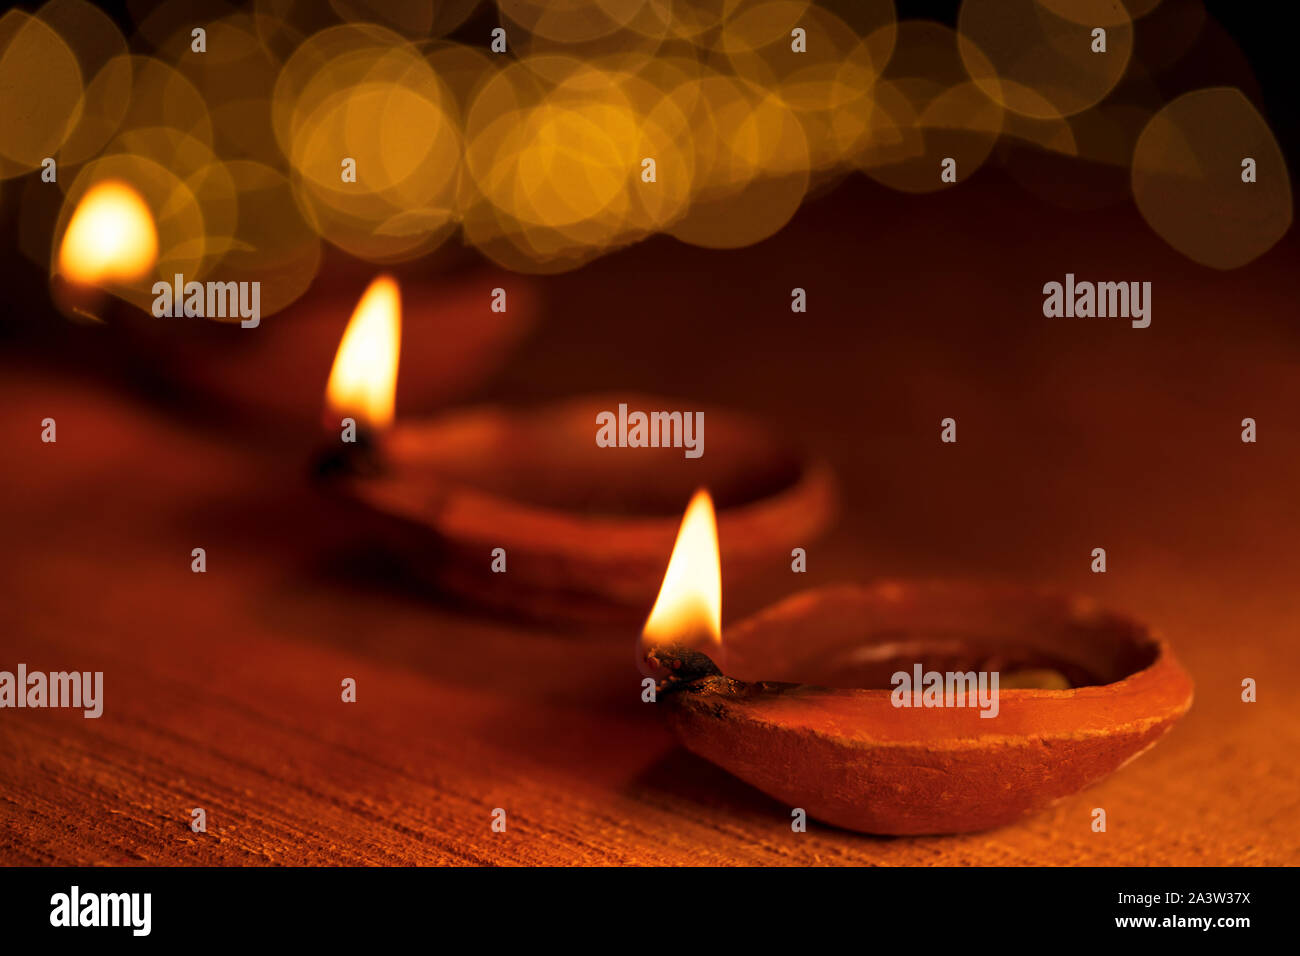 Happy Diwali background image of burning lit diya clay oil lamps with bokeh lights in the backround. Concept for Indian Hindu religious, tradition. Stock Photo